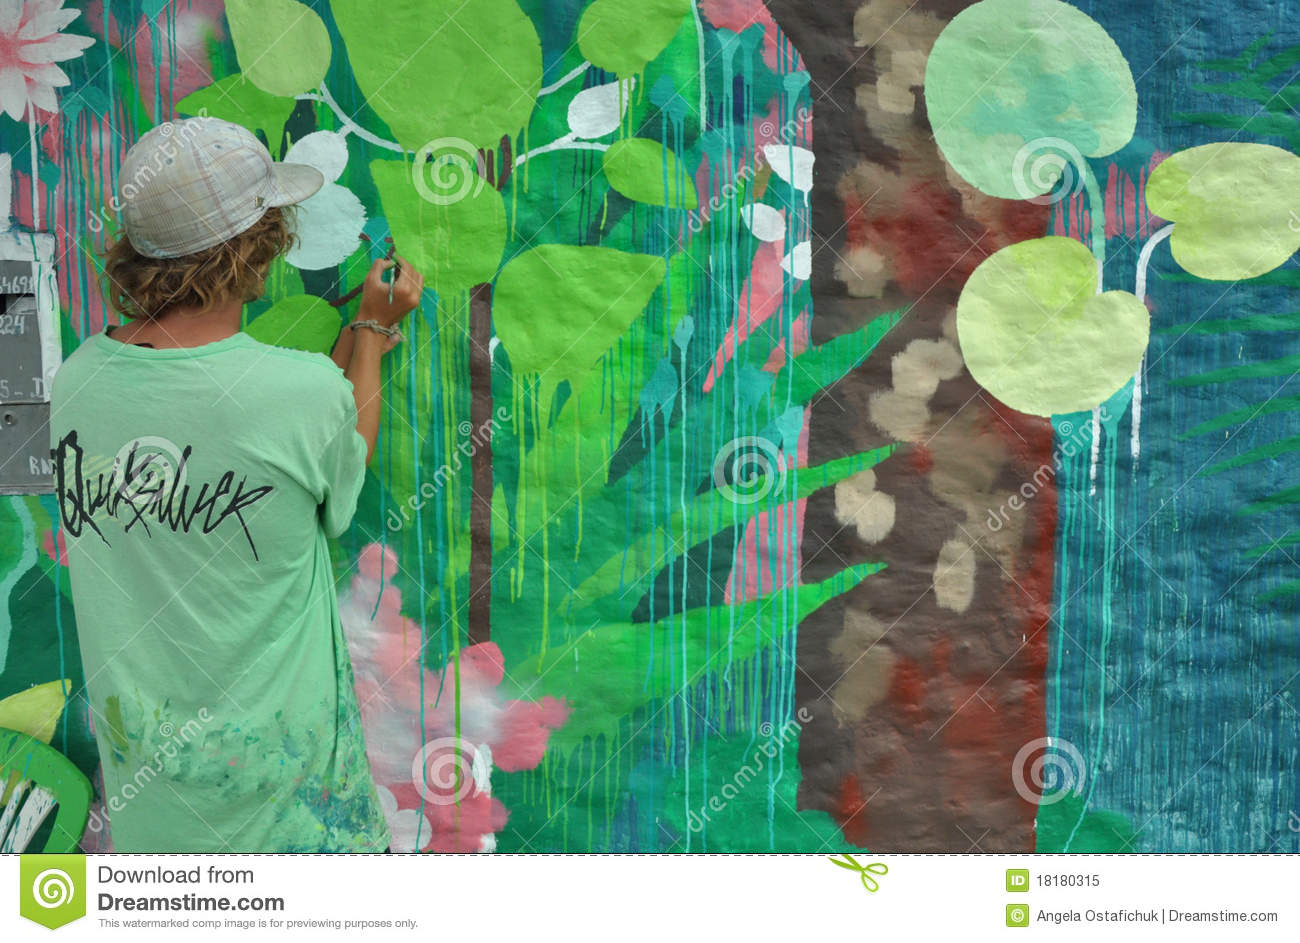 Jungle Dreams Wall Mural Painter Painting A Wall Mural Editorial Image Image